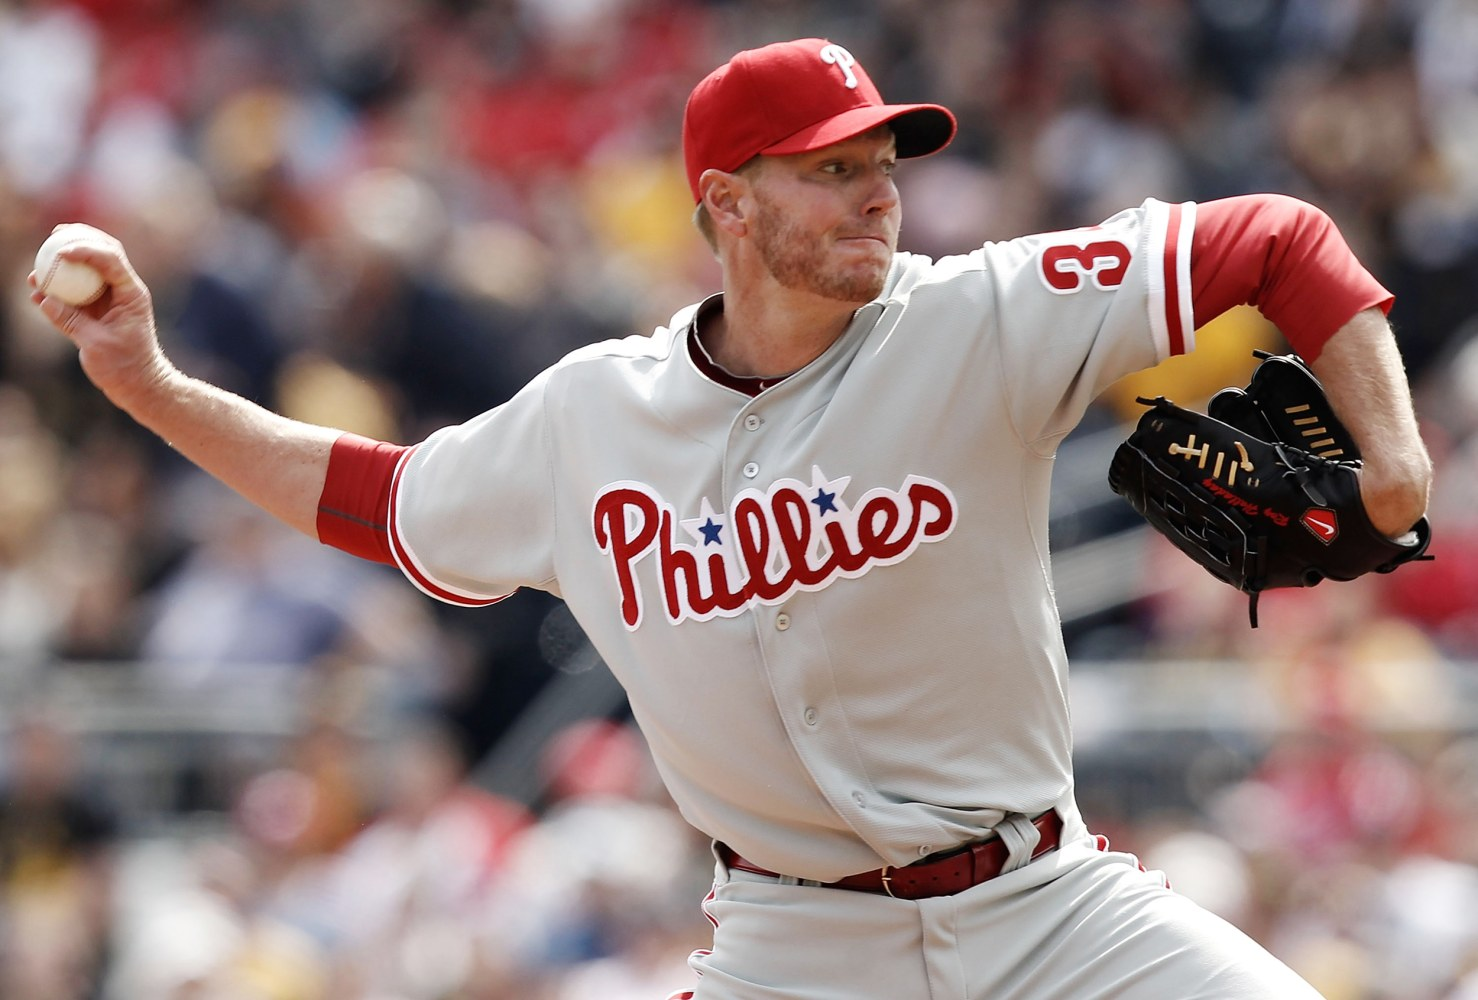 Roy Halladay, former Blue Jays pitcher, dies in plane crash